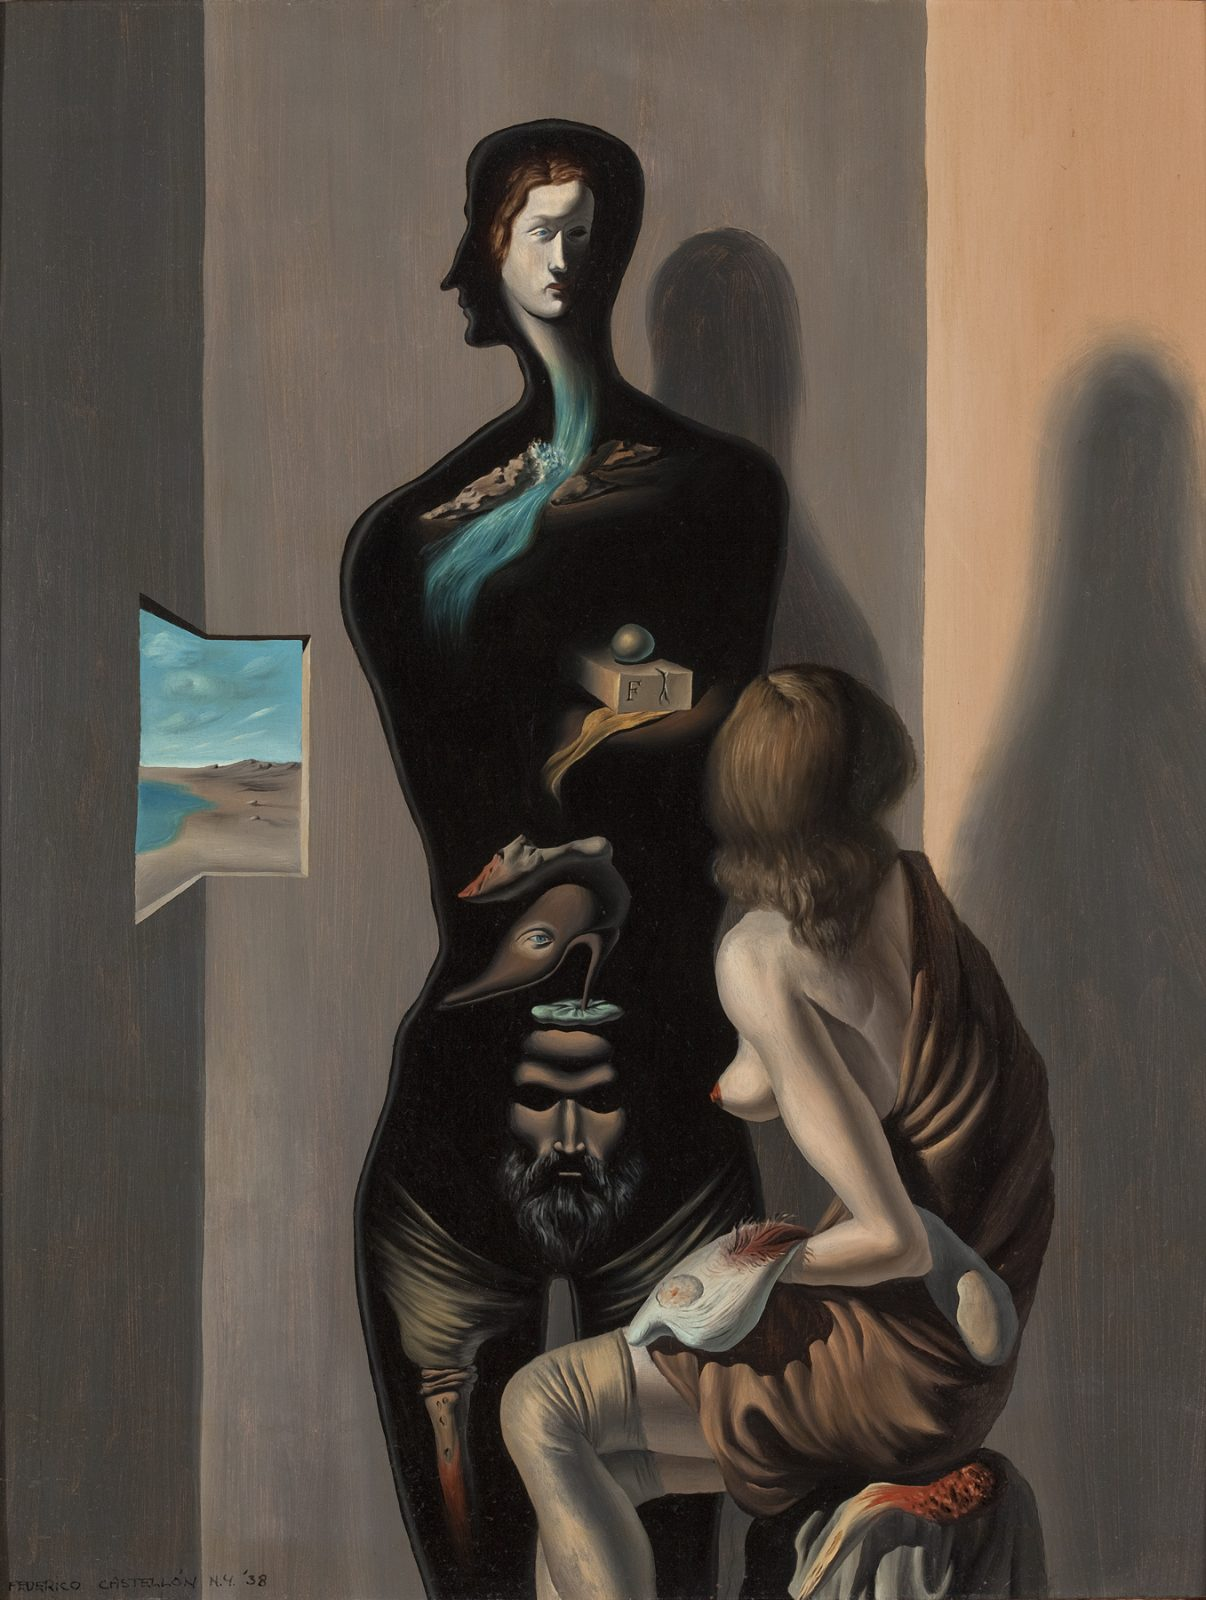 This work by Federico Castellón shows two surrealist figures